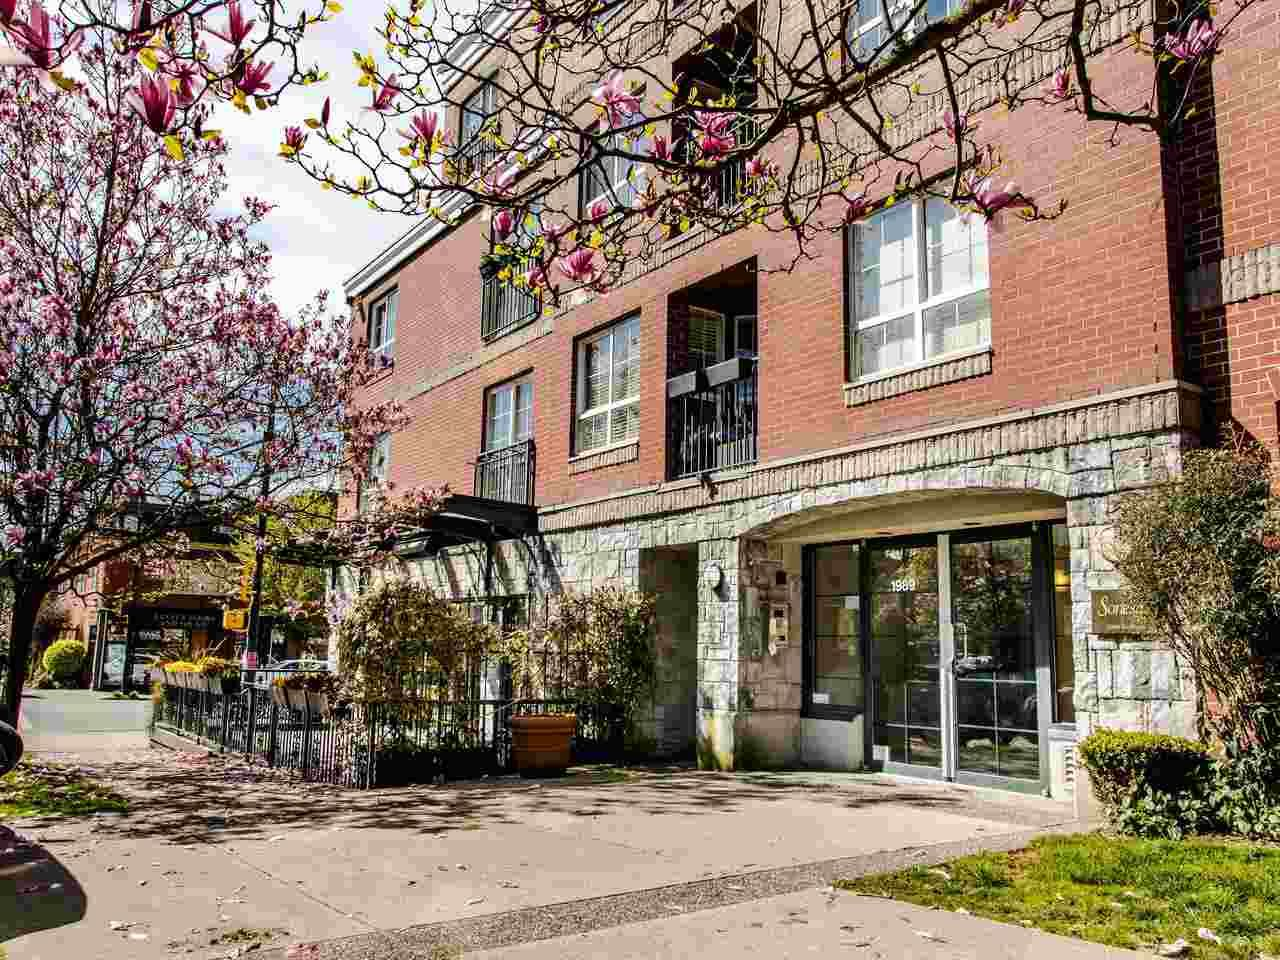 Main Photo: 306 1989 DUNBAR STREET in : Kitsilano Condo for sale : MLS®# R2450728